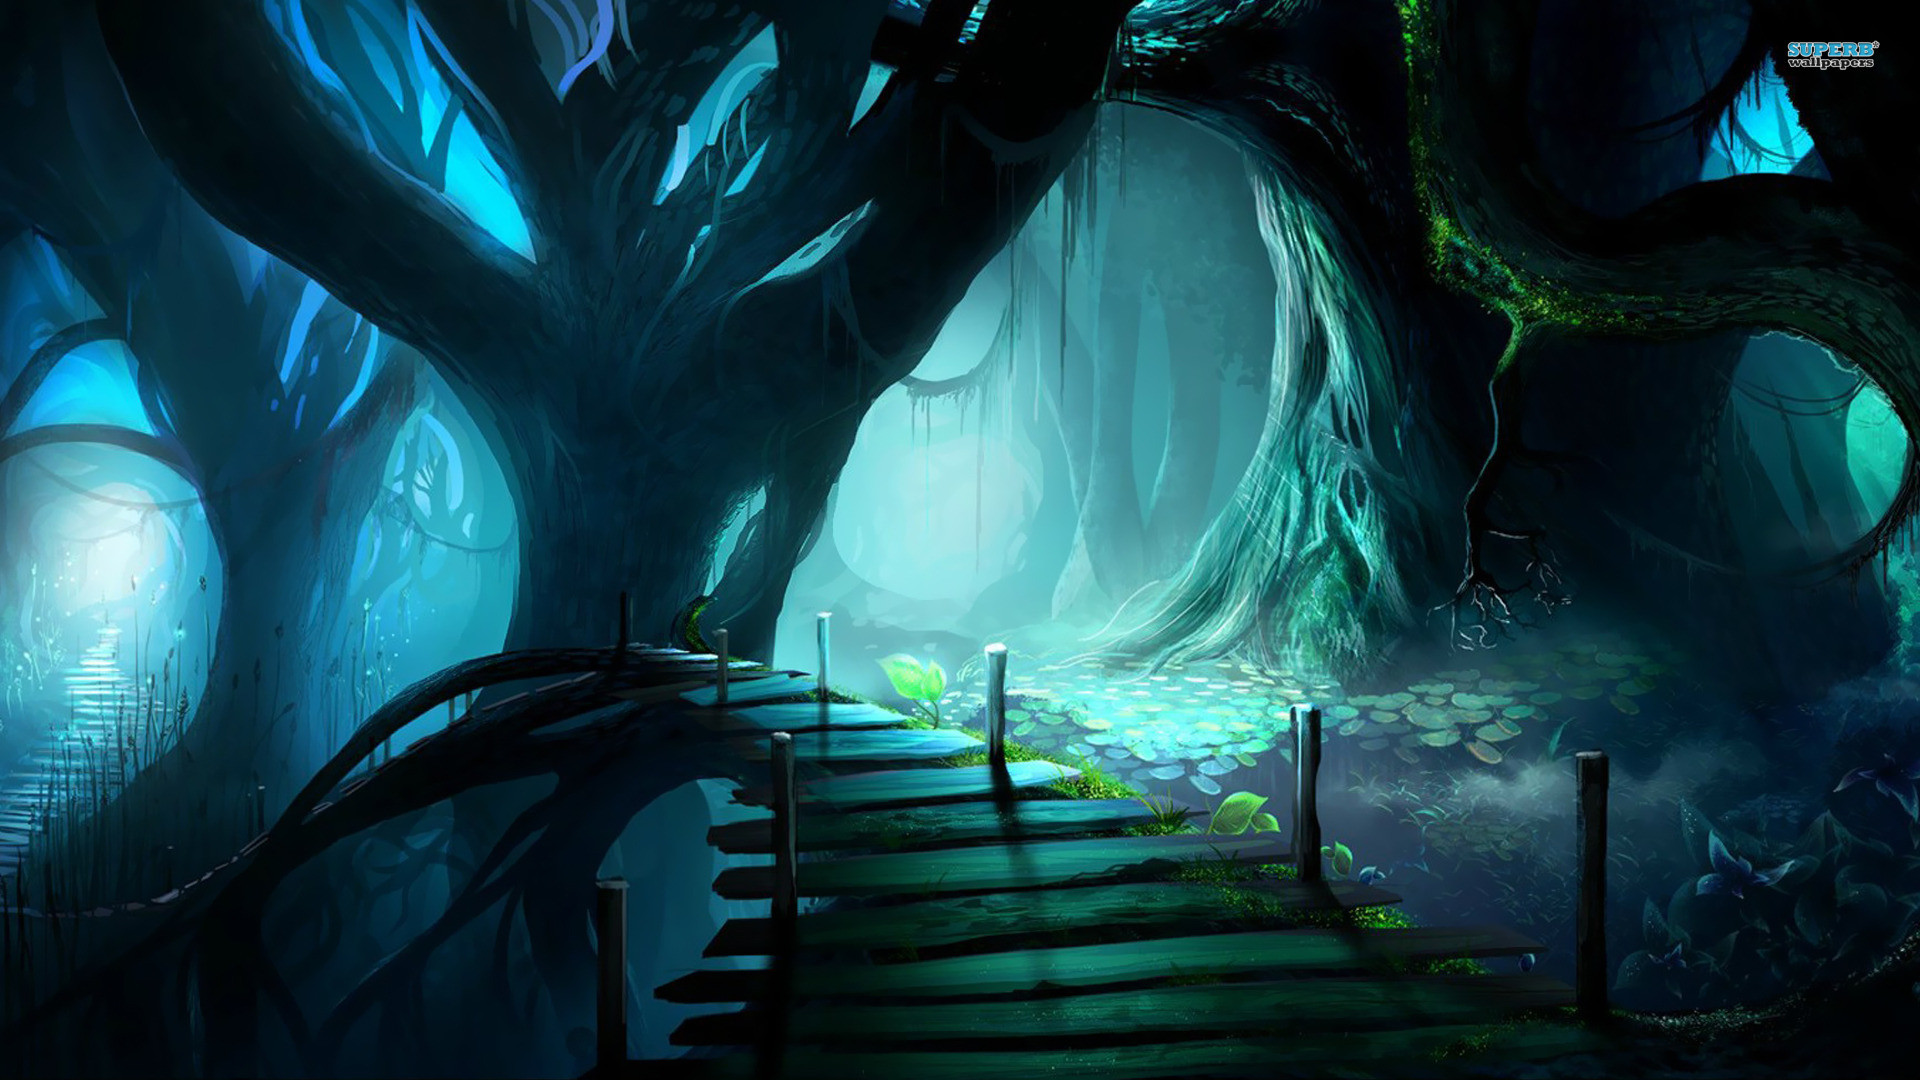 scary-forest-path-hd-wallpaper-585754.jpg (1920×